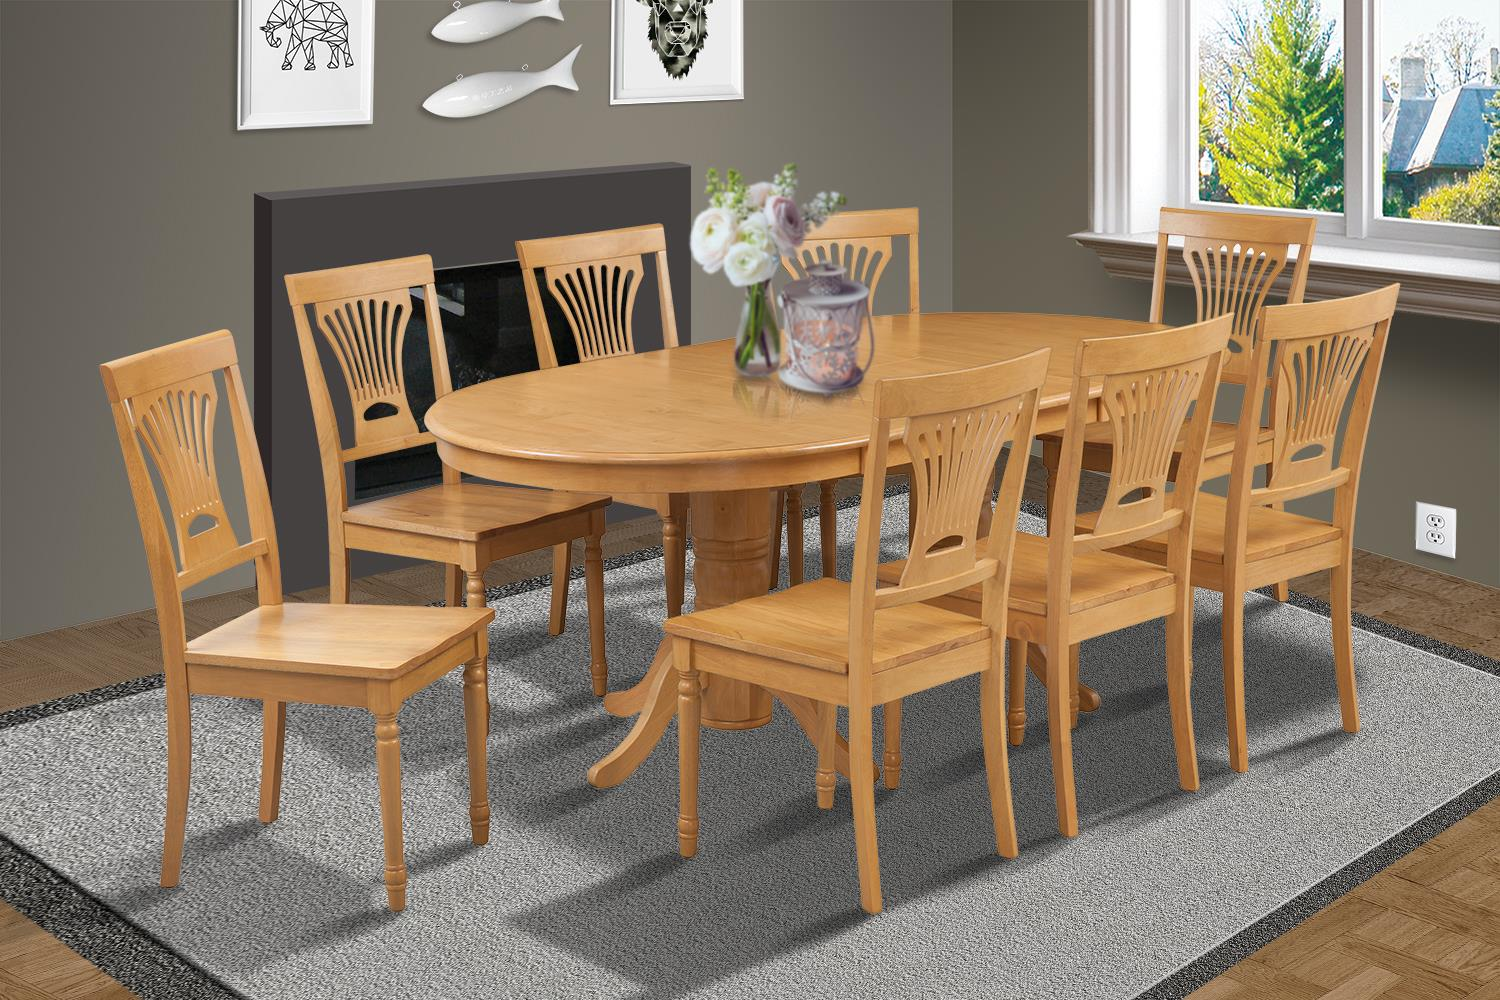 9 piece dining room set table with a butterfly leaf and 8 dining chairs ojcommerce. Black Bedroom Furniture Sets. Home Design Ideas